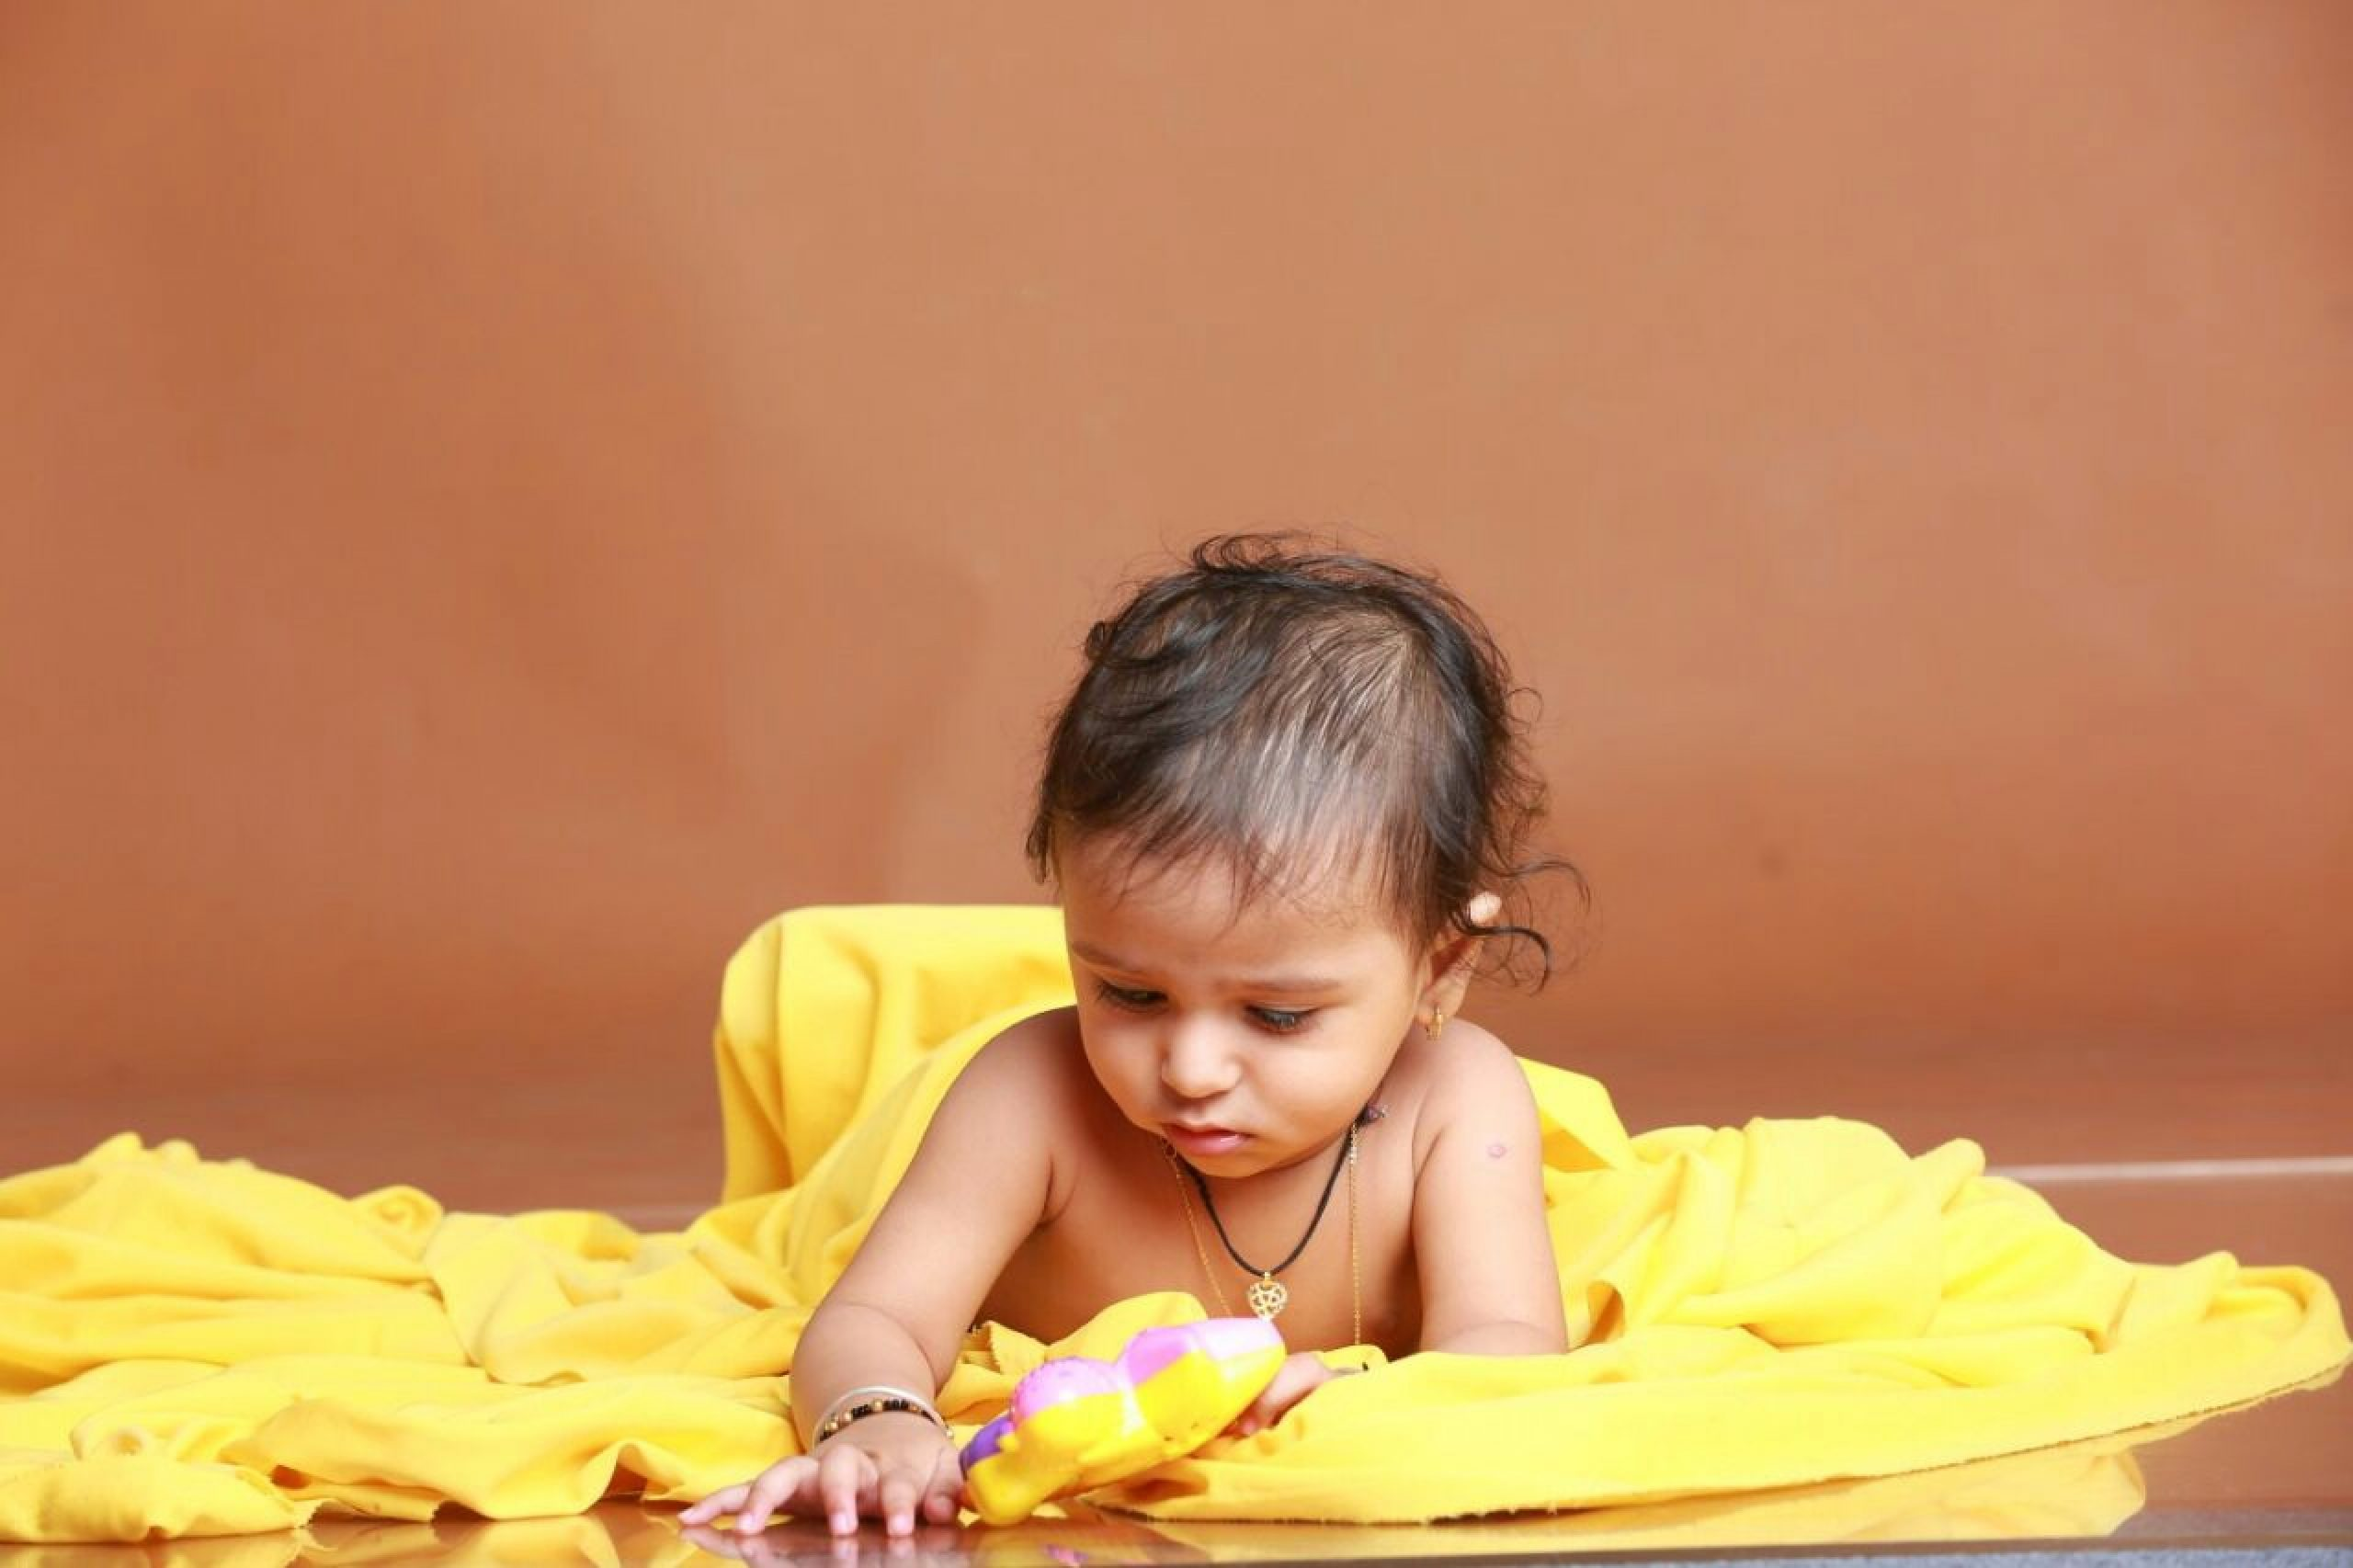 A baby playing with toys